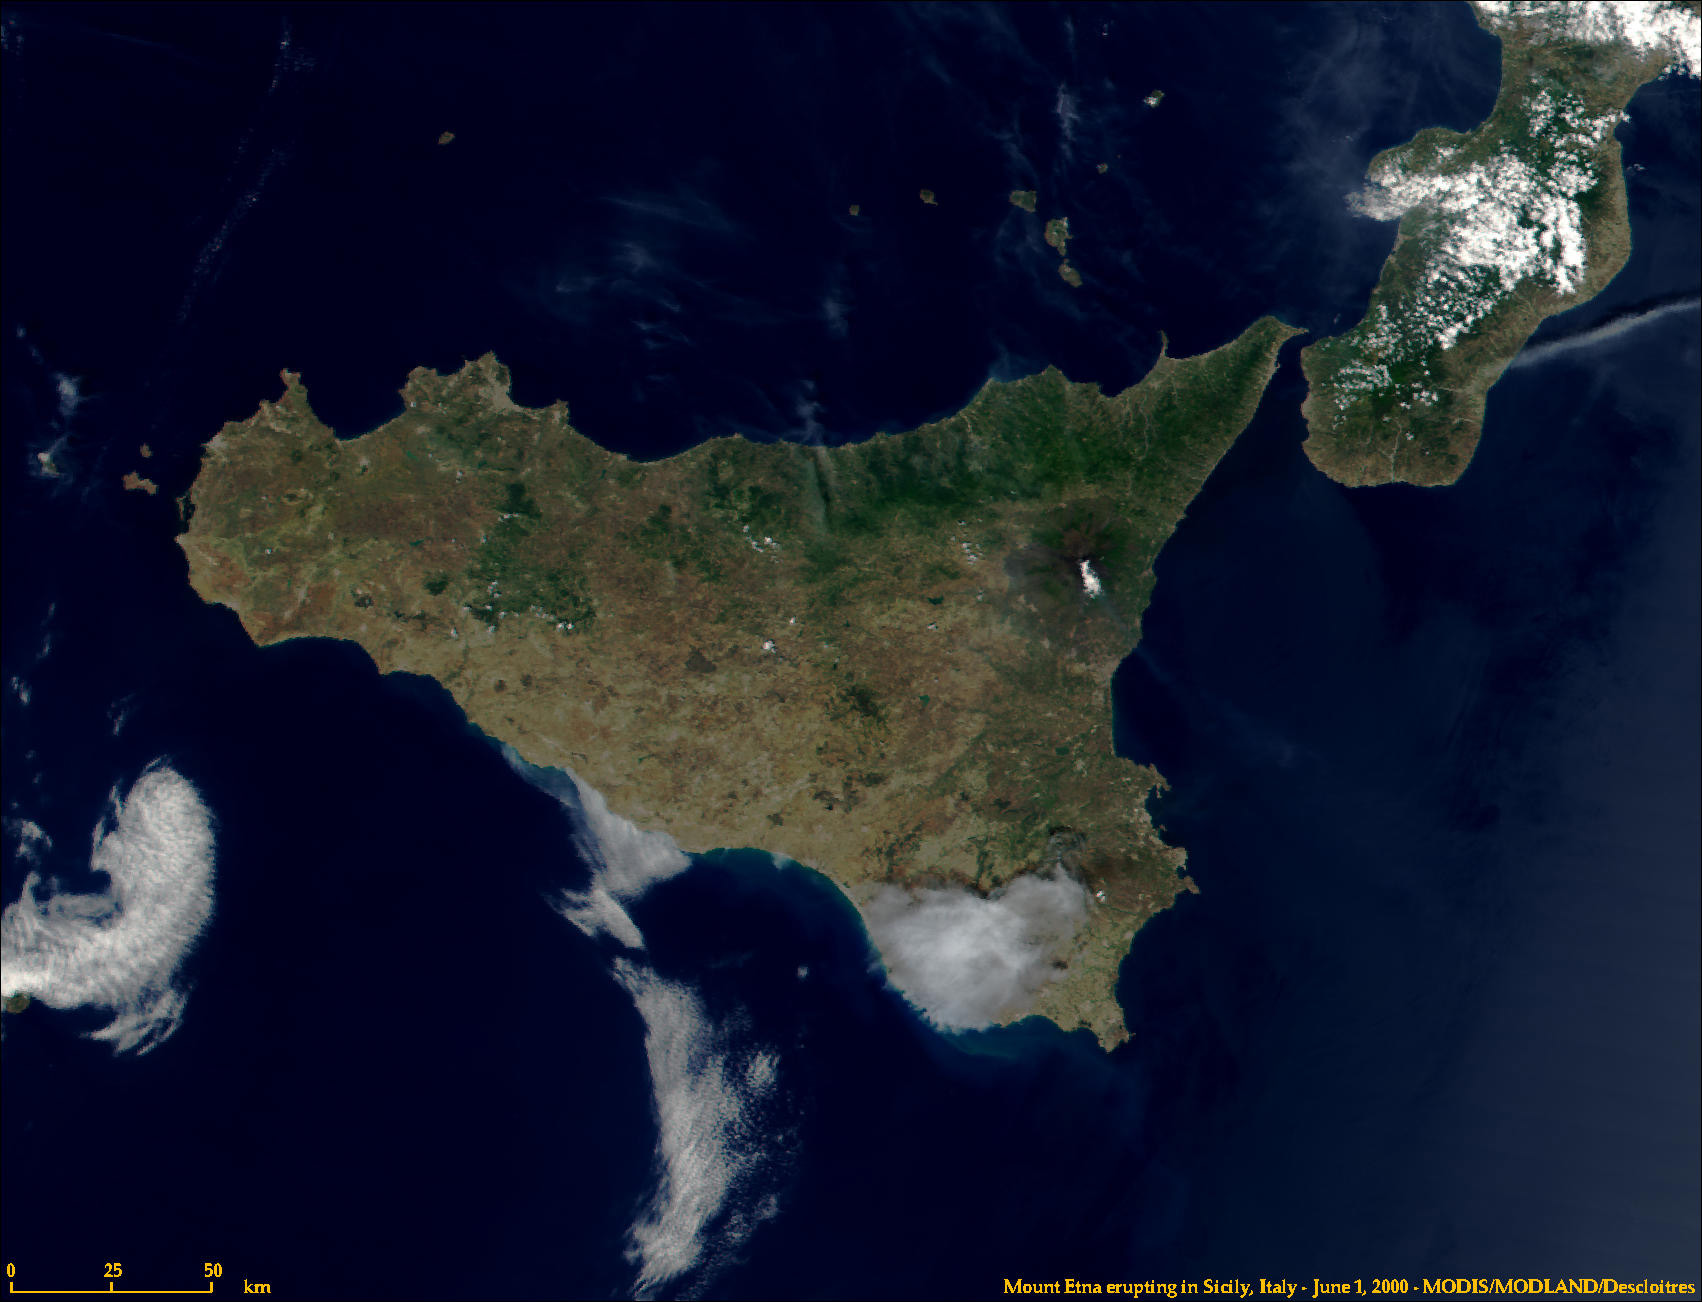 Sicily, Italy from MODIS